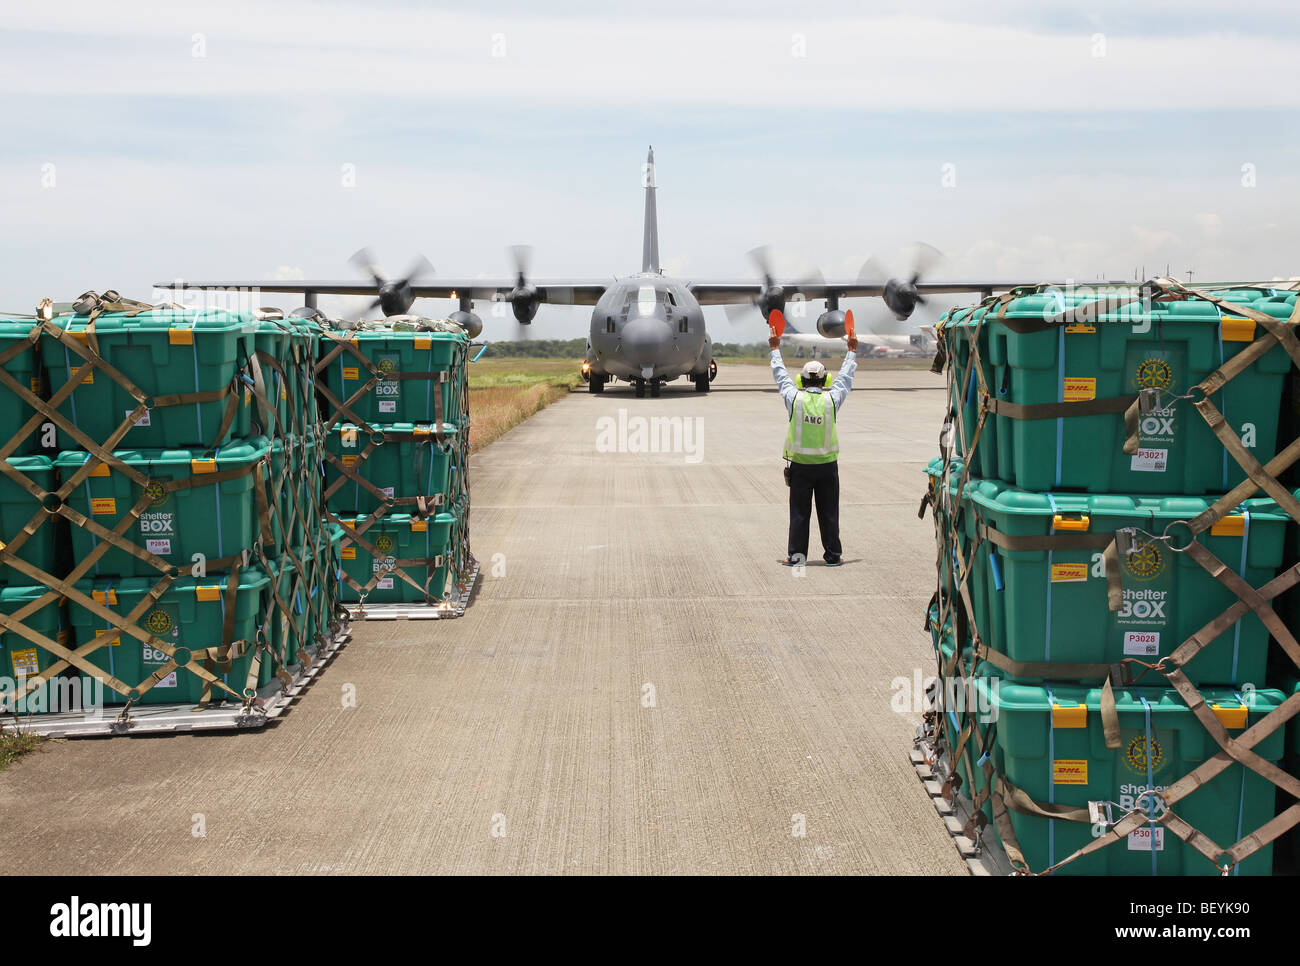 Royal Australian Air Force deliver post-earthquake aid in the form of Shelterboxes to Padang, West Sumatra, Indonesia. - Stock Image